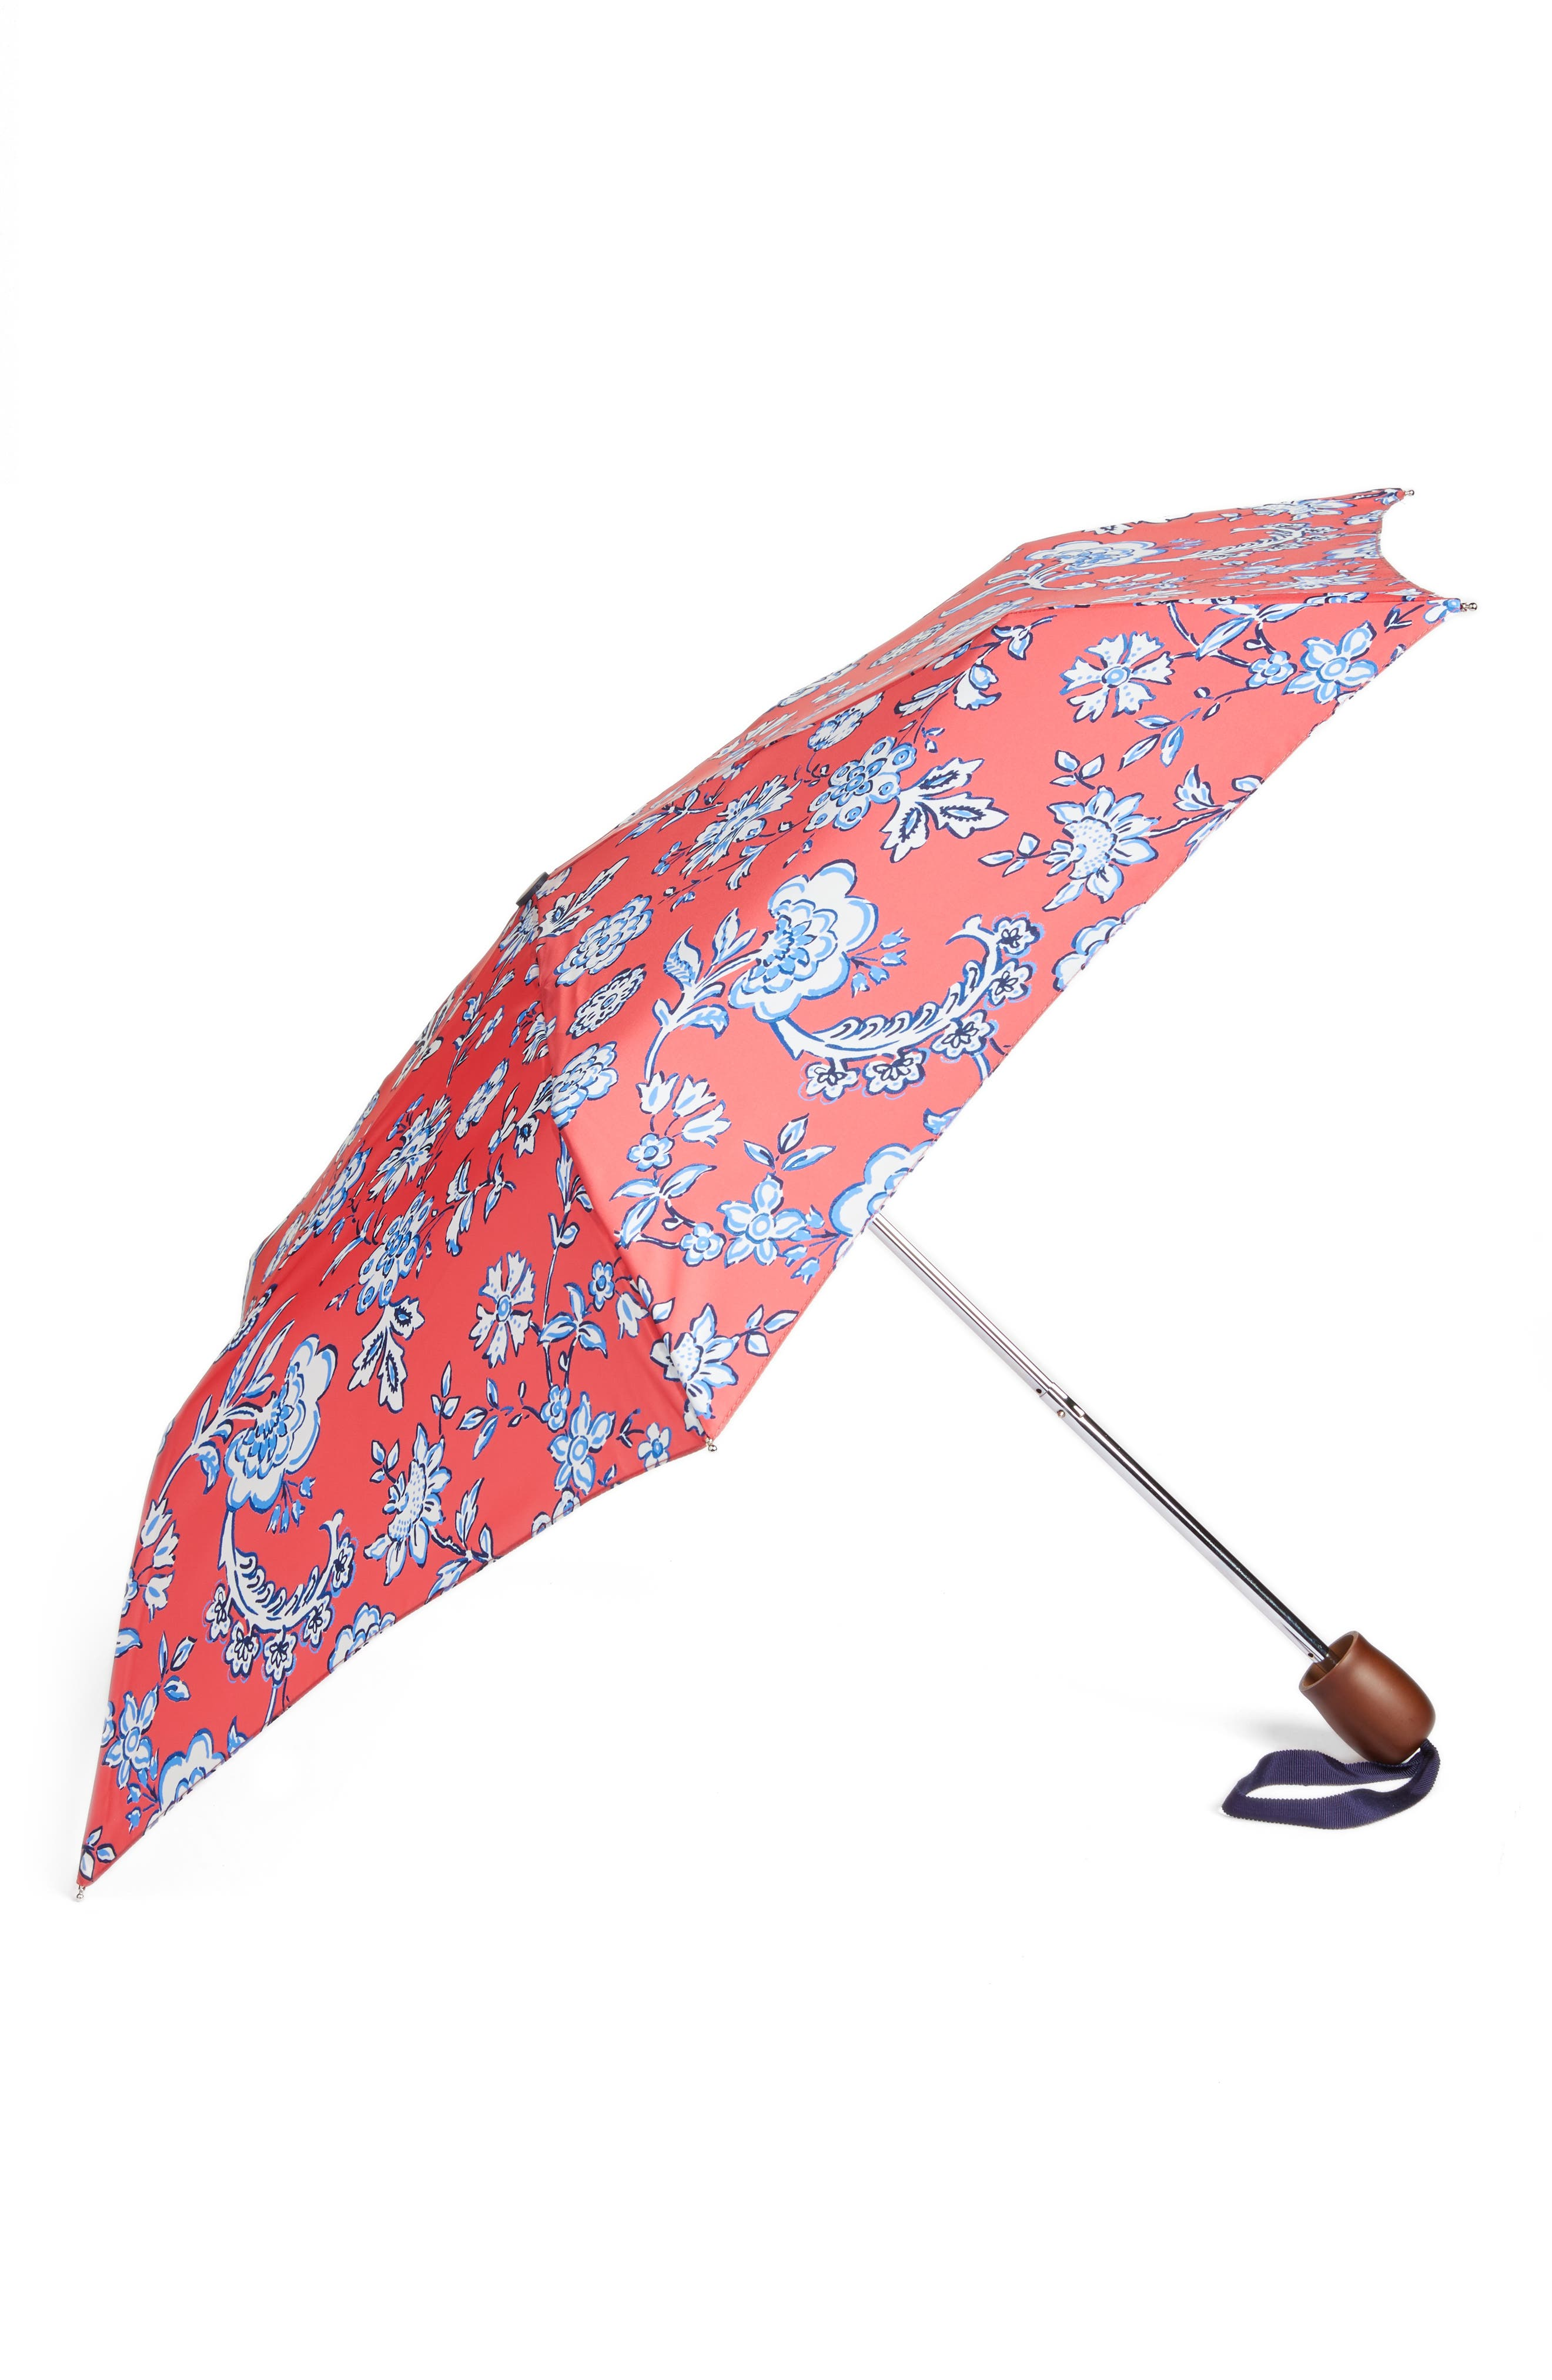 Right as Rain Print Umbrella,                             Main thumbnail 1, color,                             Red Sky Indienne